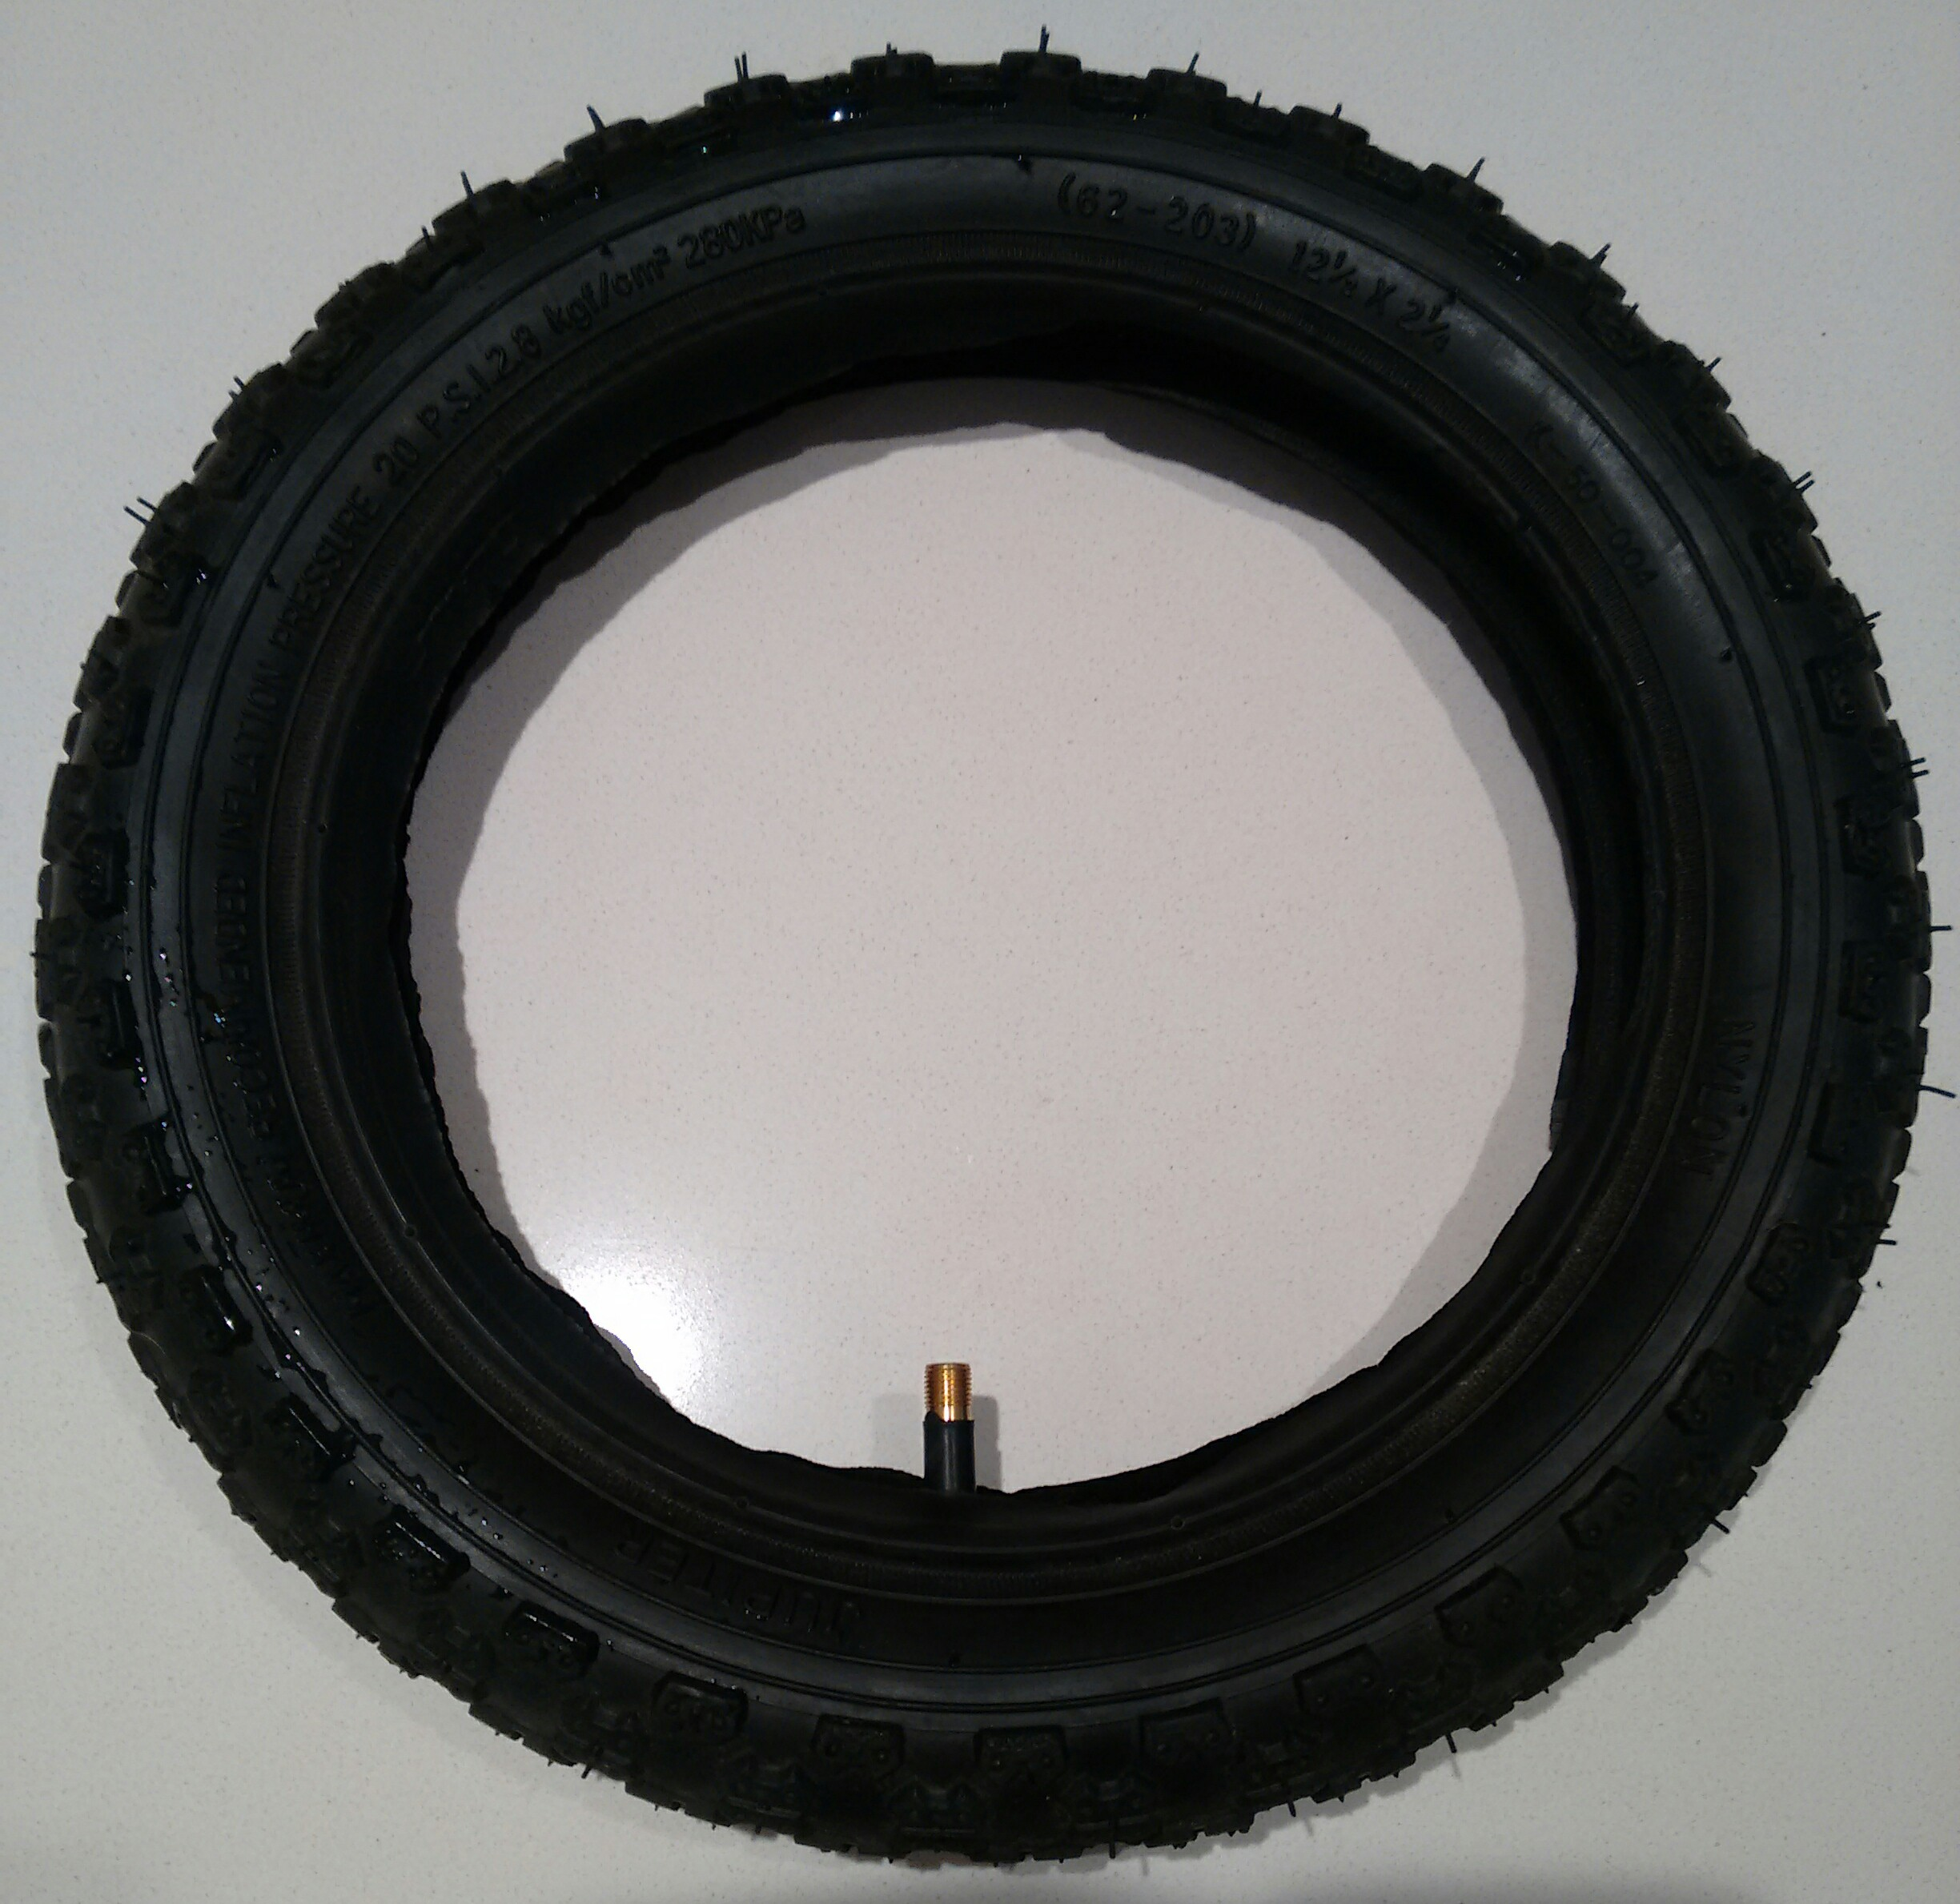 wheel_tube_and_tire